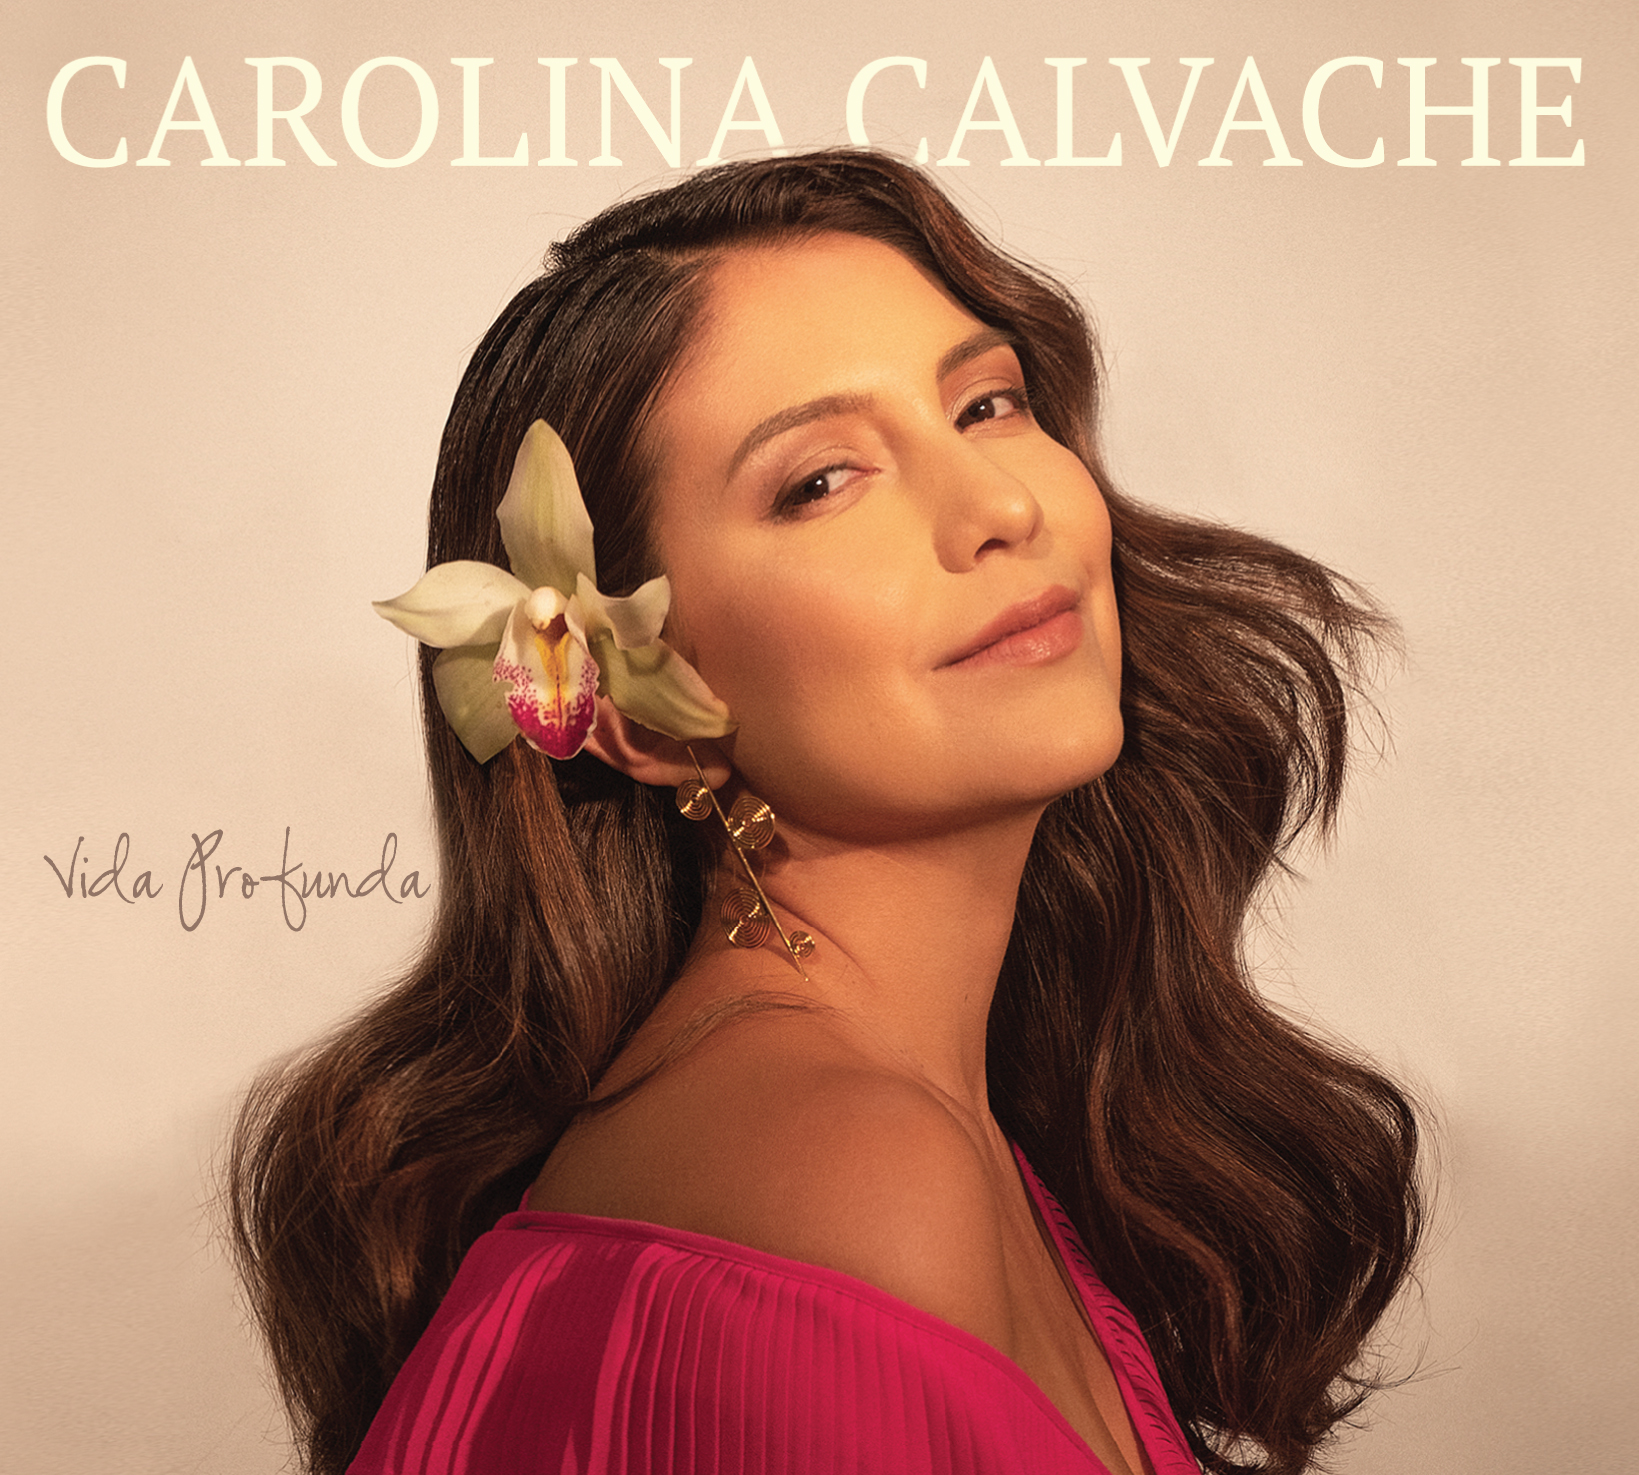 NEW RELEASE: Carolina Calvache's Second Album 'Vida Profunda' is out May 29 via Sunnyside